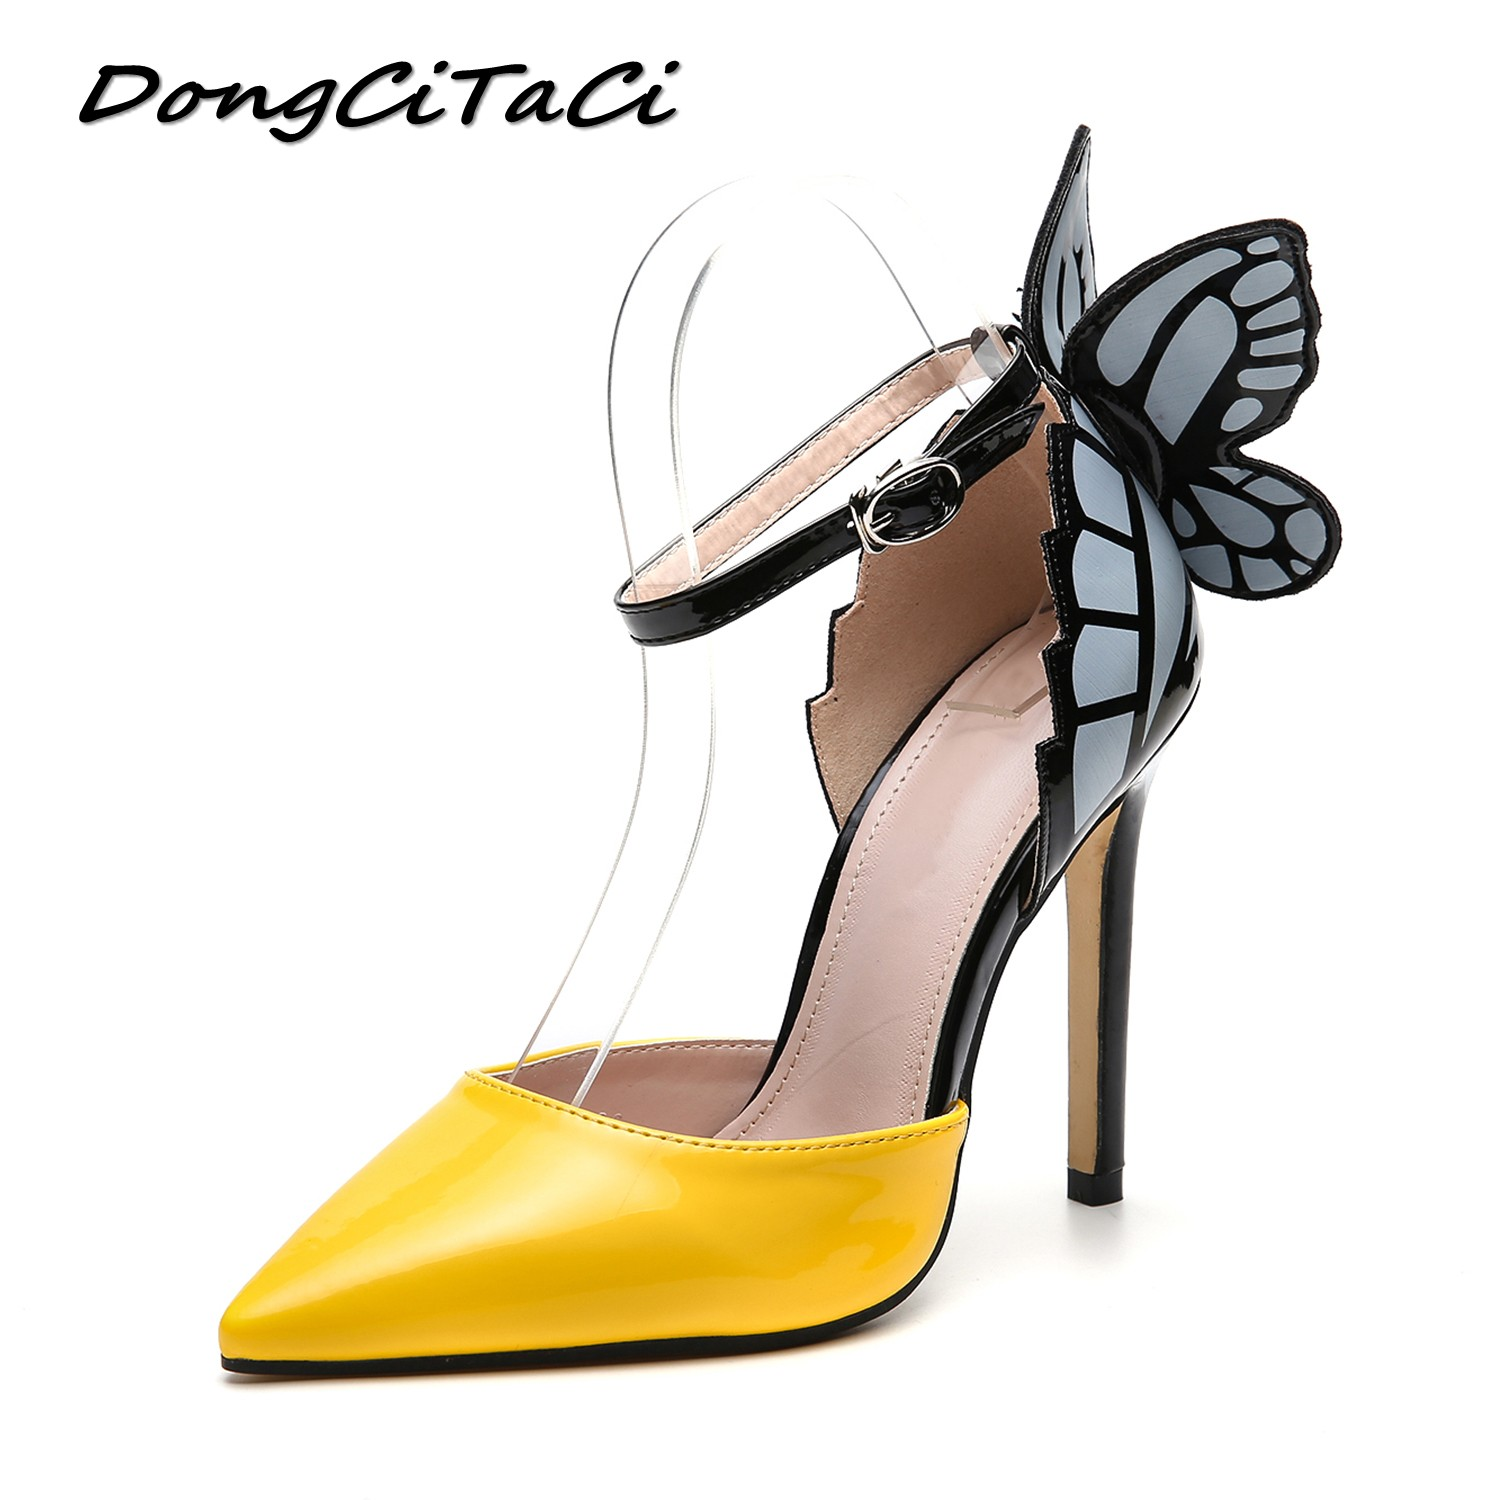 DongCiTaCi Women Dream butterfly Pointed Toe High Heels Shoes Woman Pumps Fashion Female Ankle Strap Dress Party Wedding ShoesDongCiTaCi Women Dream butterfly Pointed Toe High Heels Shoes Woman Pumps Fashion Female Ankle Strap Dress Party Wedding Shoes